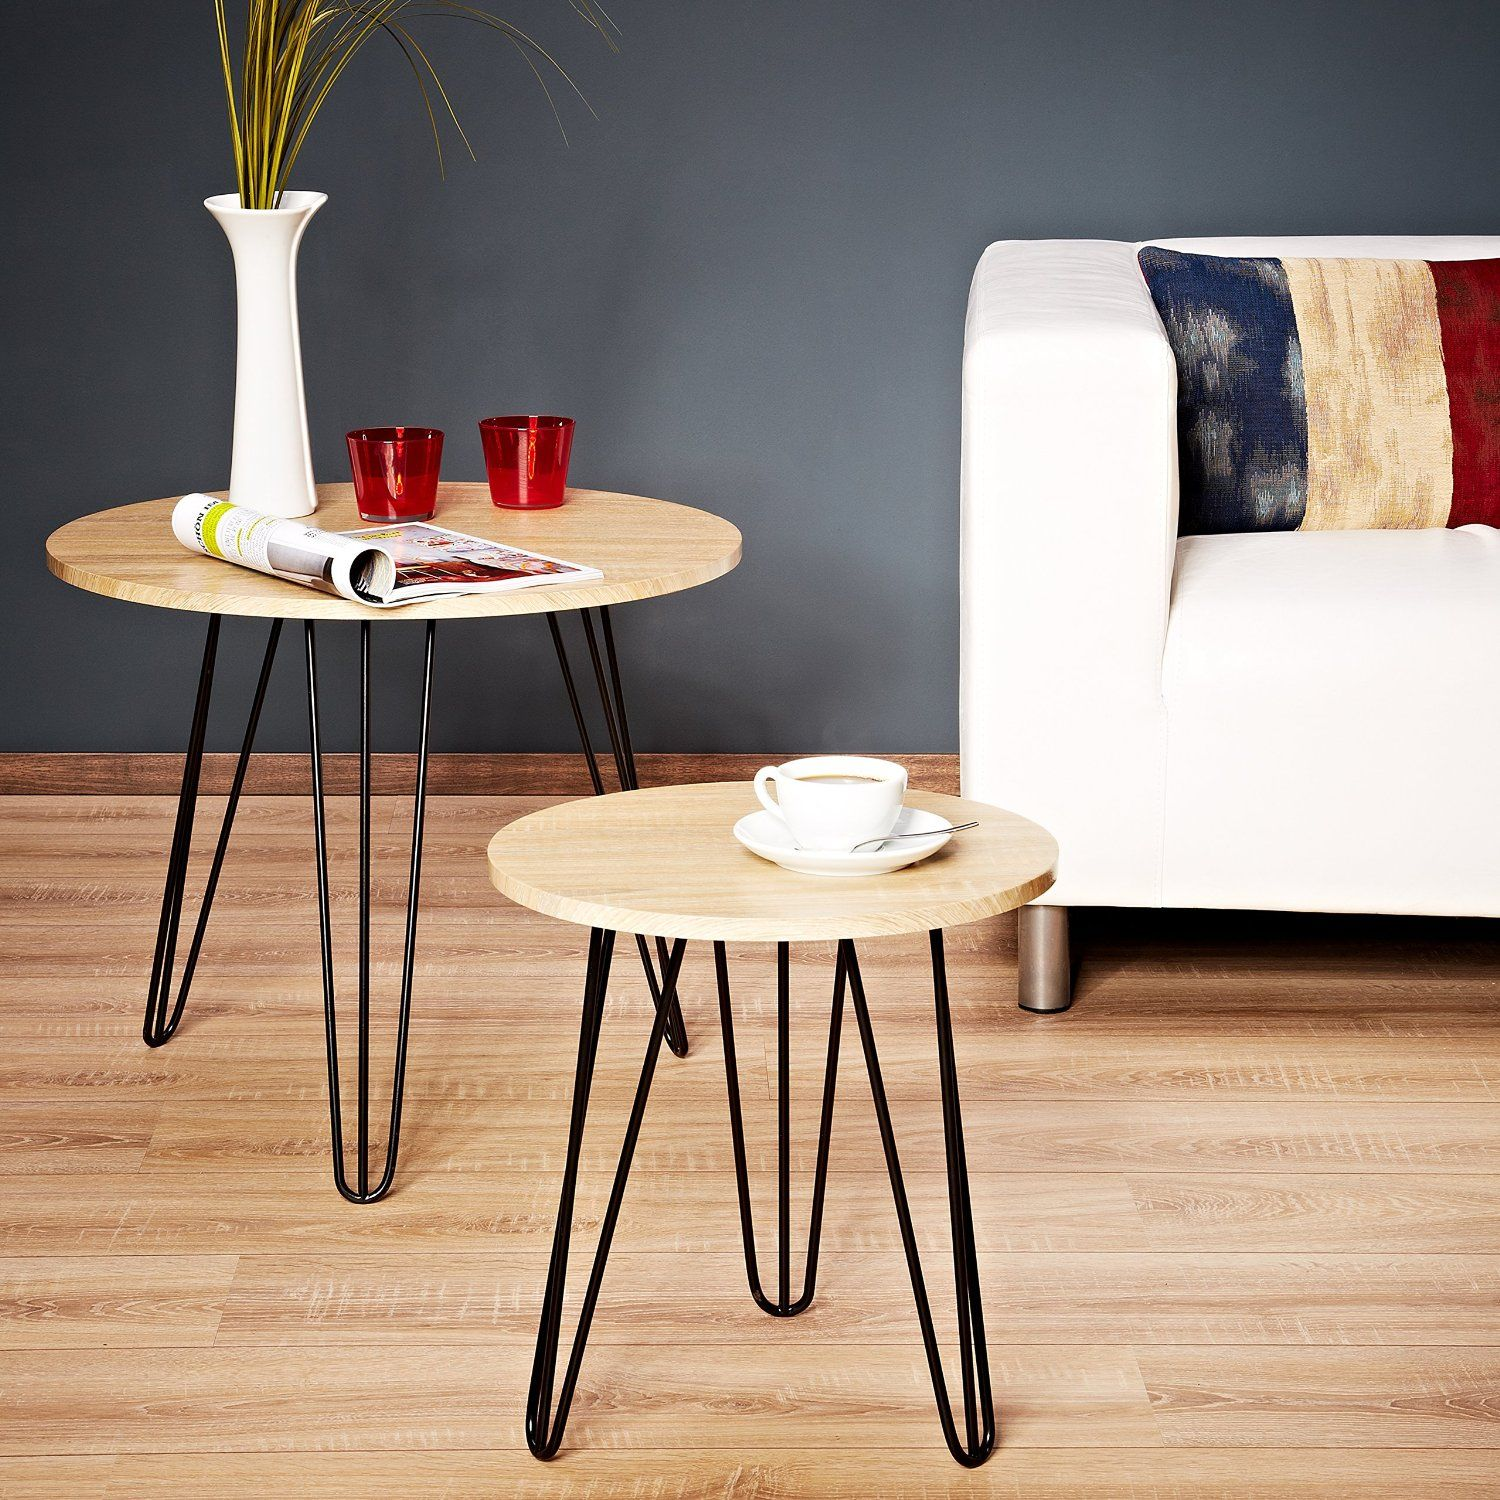 Pied De Table Basse Scandinave Lomos No 14 Set De Tables Basses En Look Rétro Scandinave